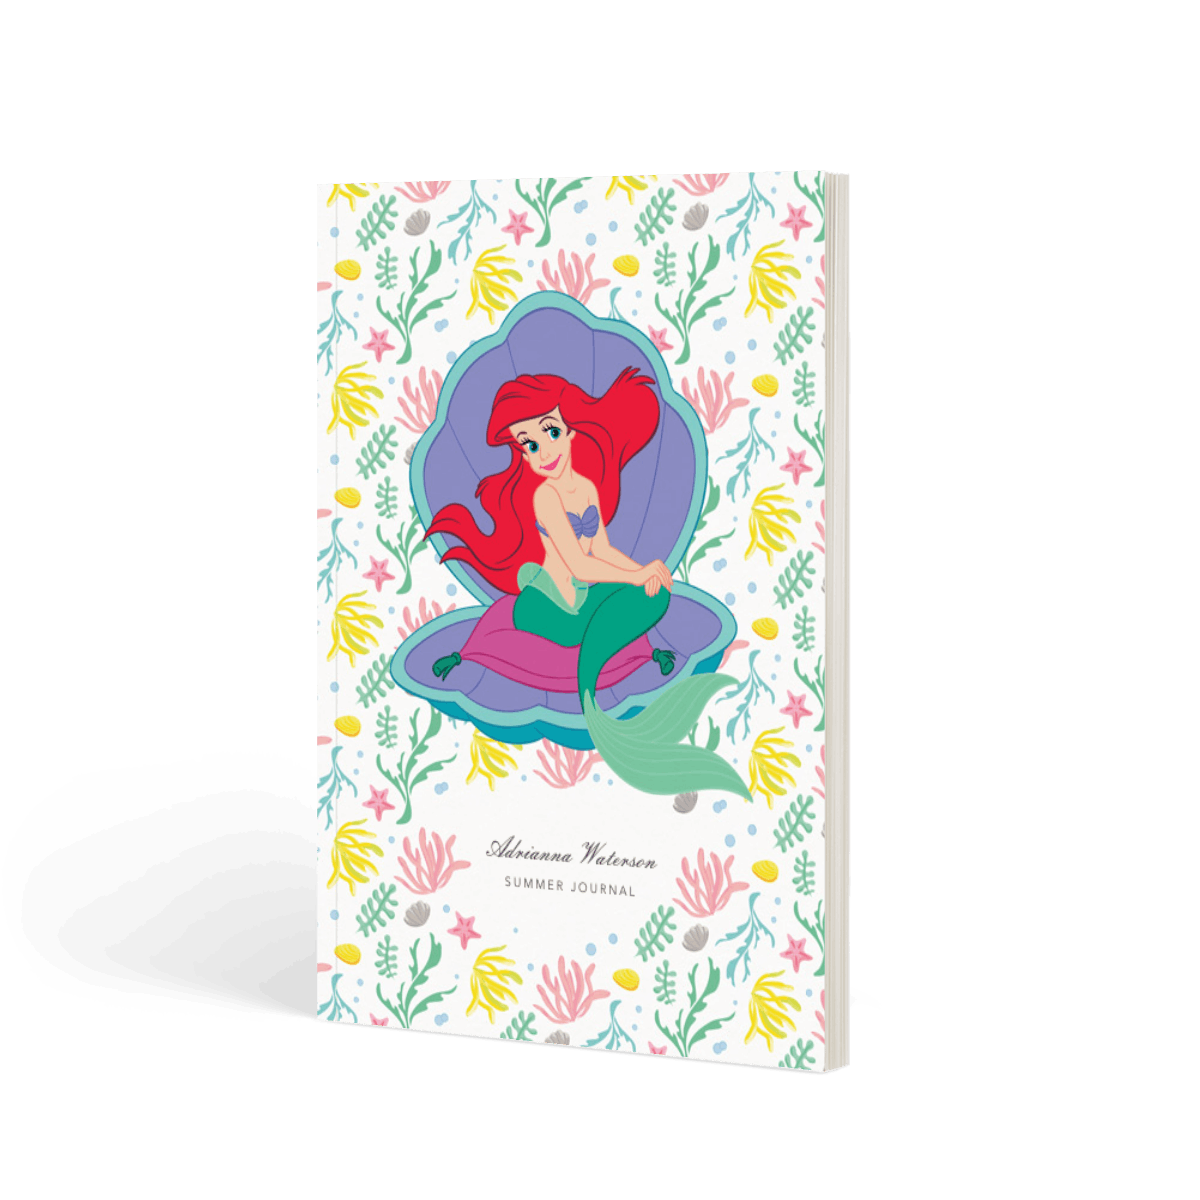 Https%3a%2f%2fwww.papier.com%2fproduct image%2f54117%2f6%2fthe little mermaid 13017 vorderseite 1542292245.png?ixlib=rb 1.1